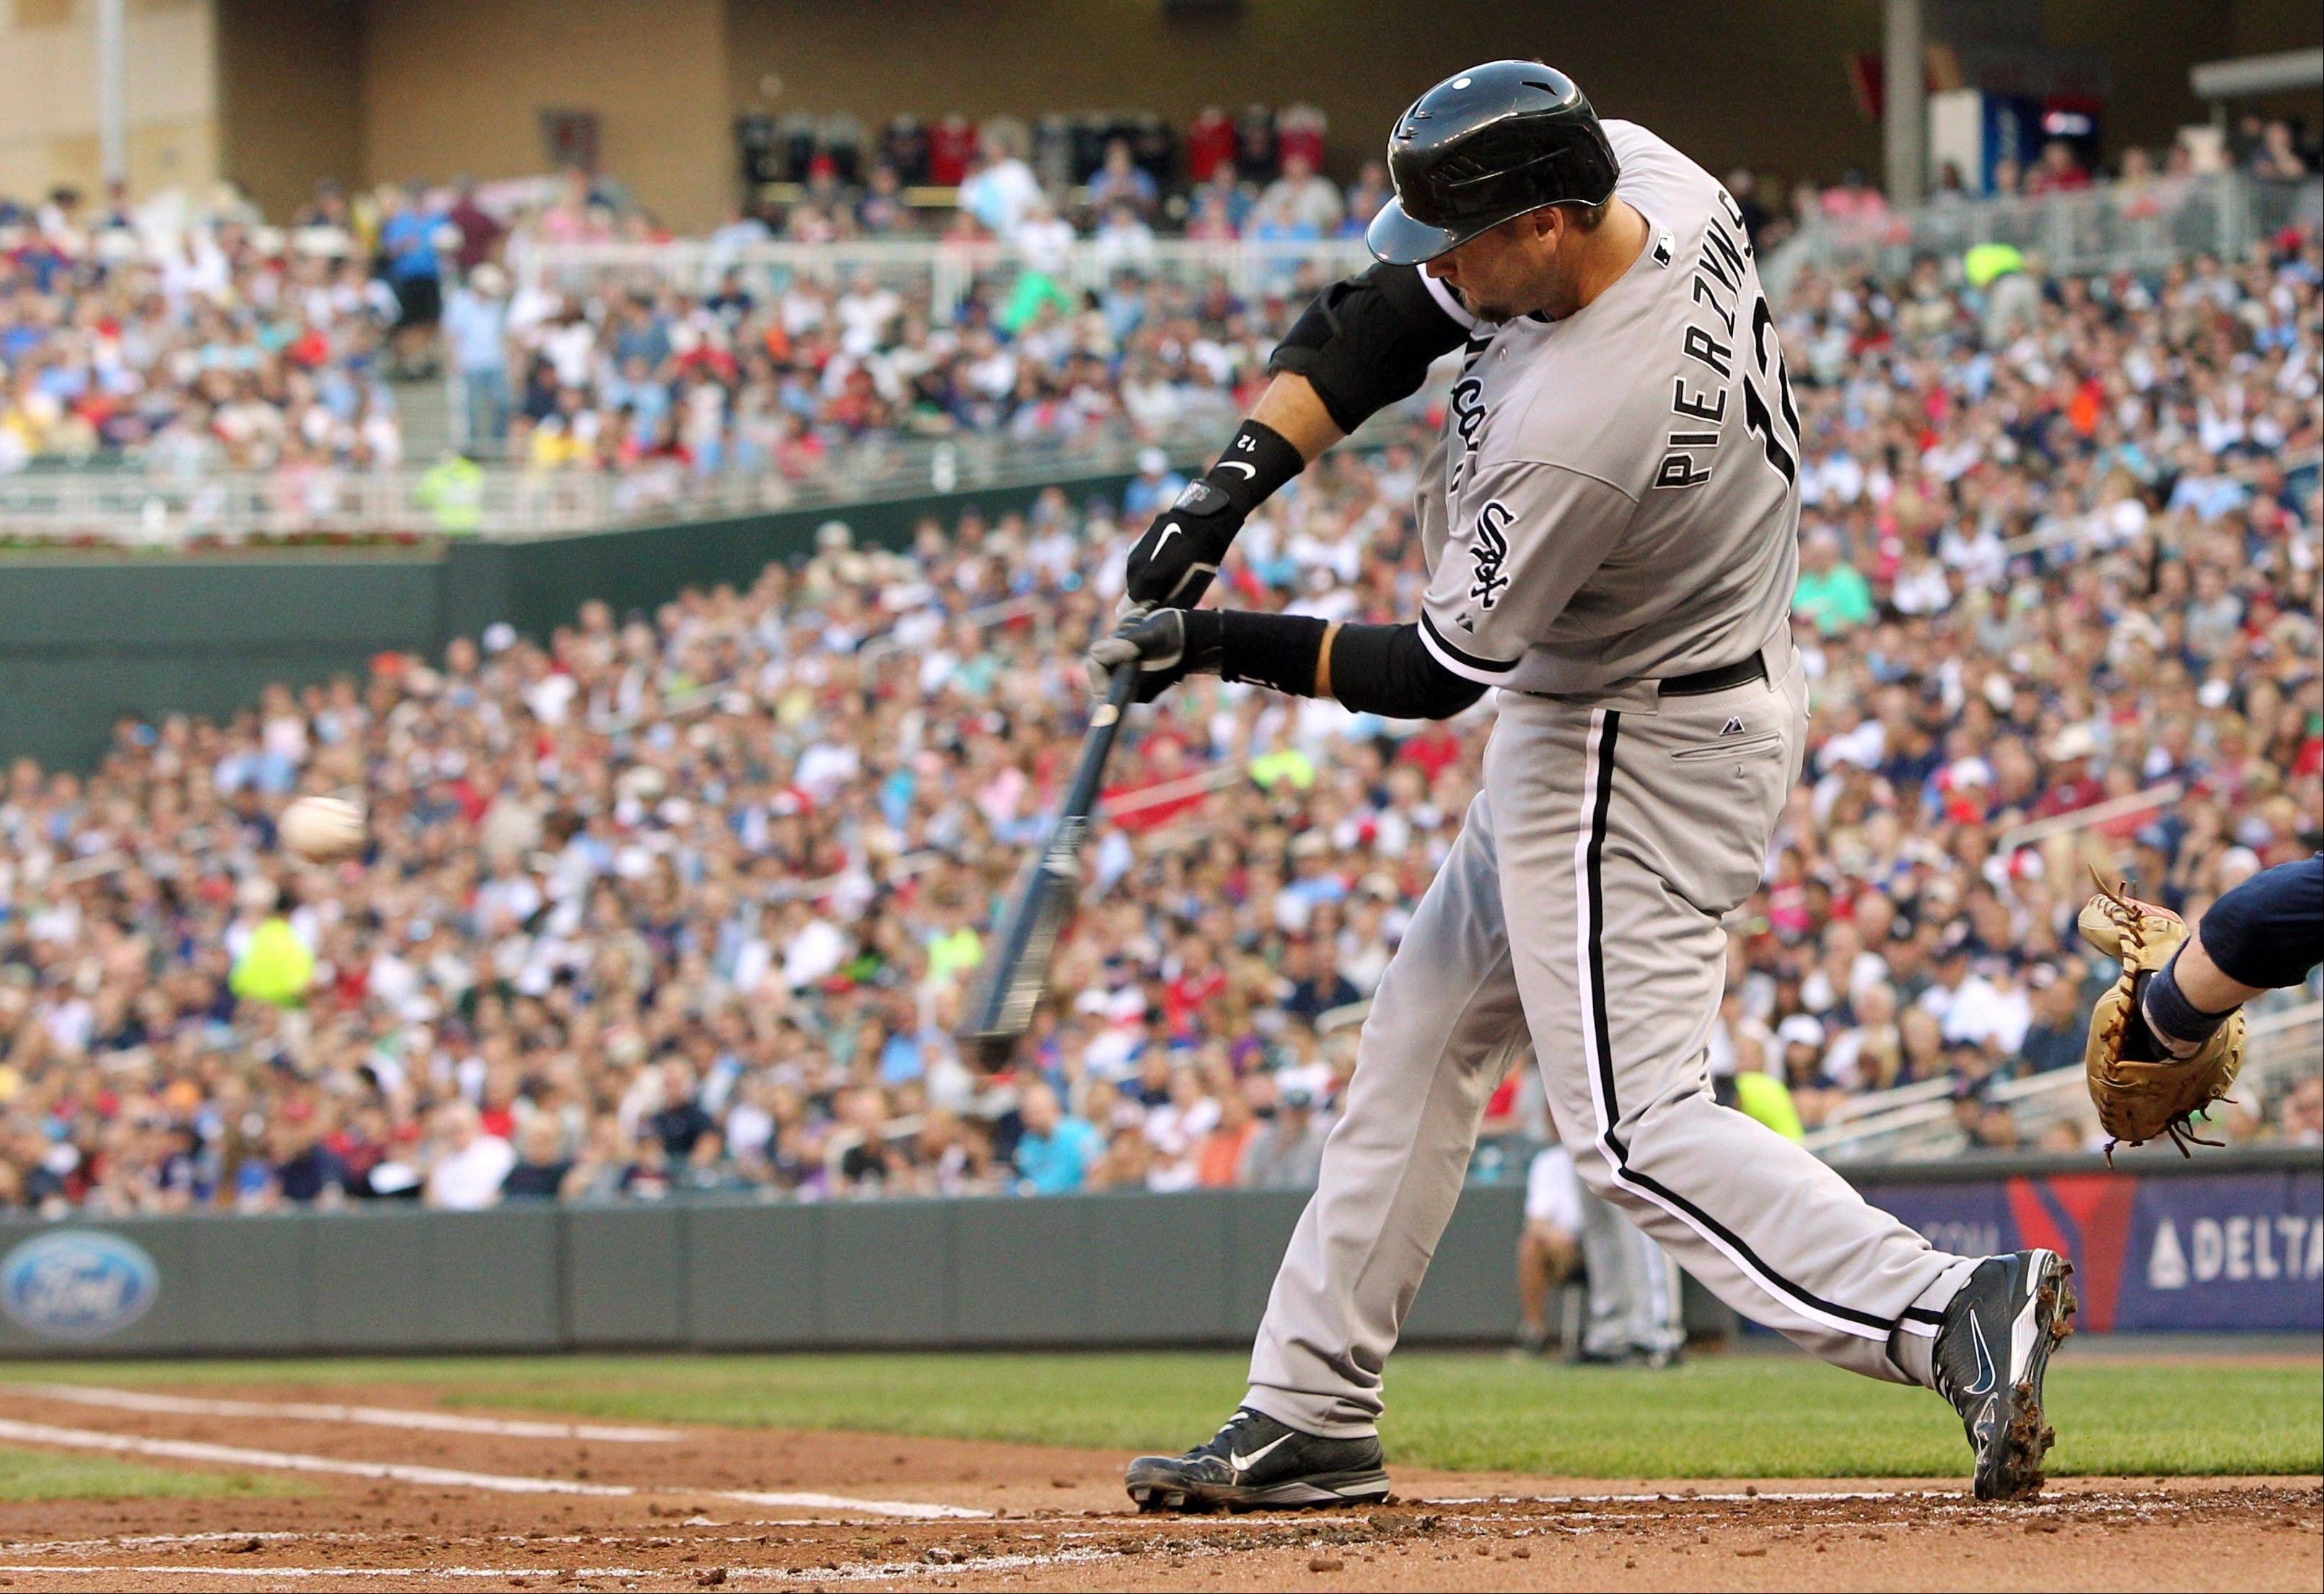 White Sox catcher A.J. Pierzynski hits a single against Minnesota Twins starting pitcher Nick Blackburn Tuesday during the second inning.